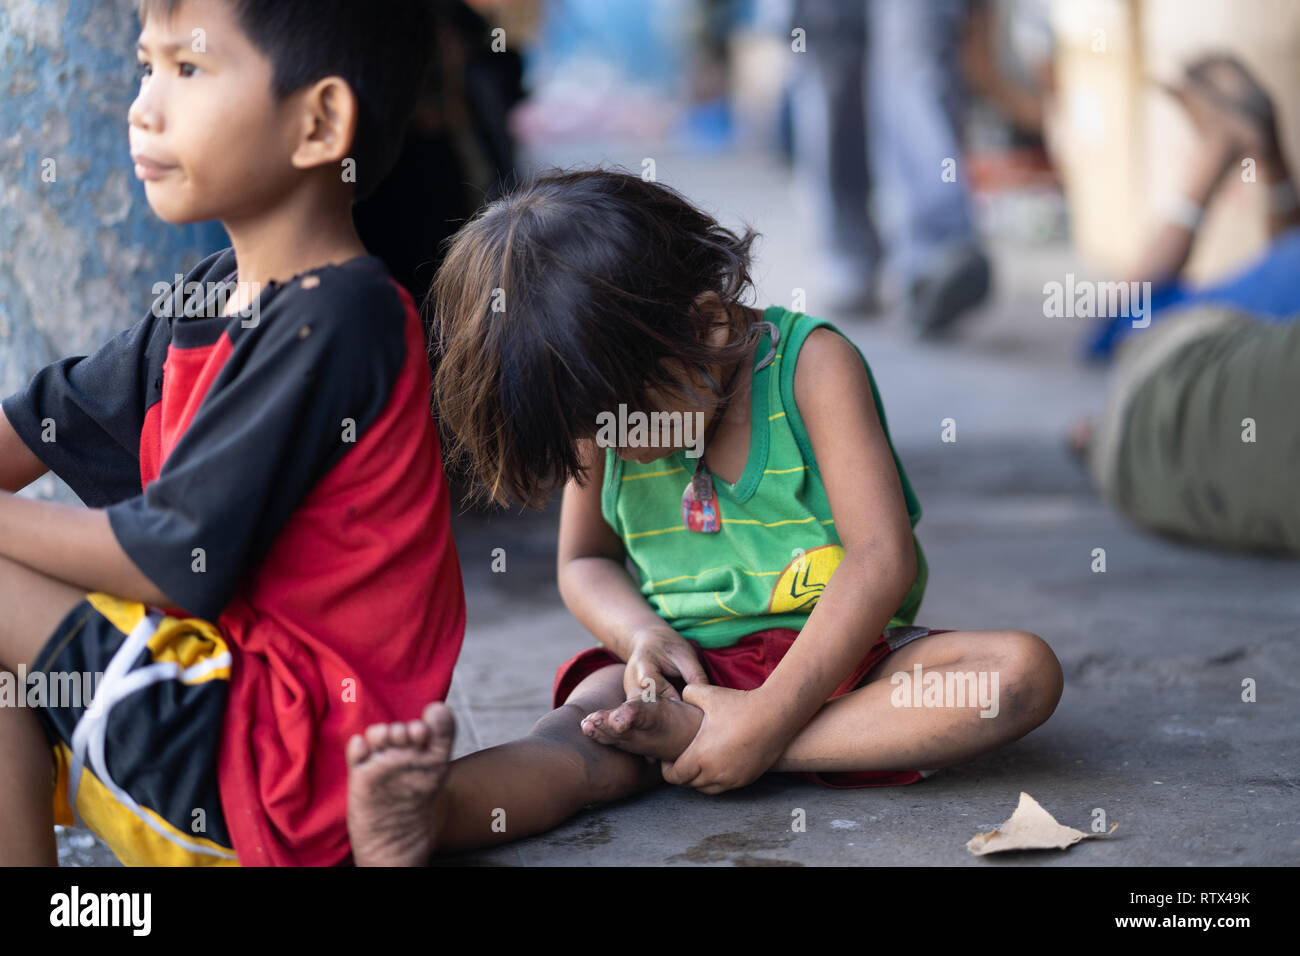 A child with no shoes sitting on a sidewalk within Cebu City,Philippines - Stock Image